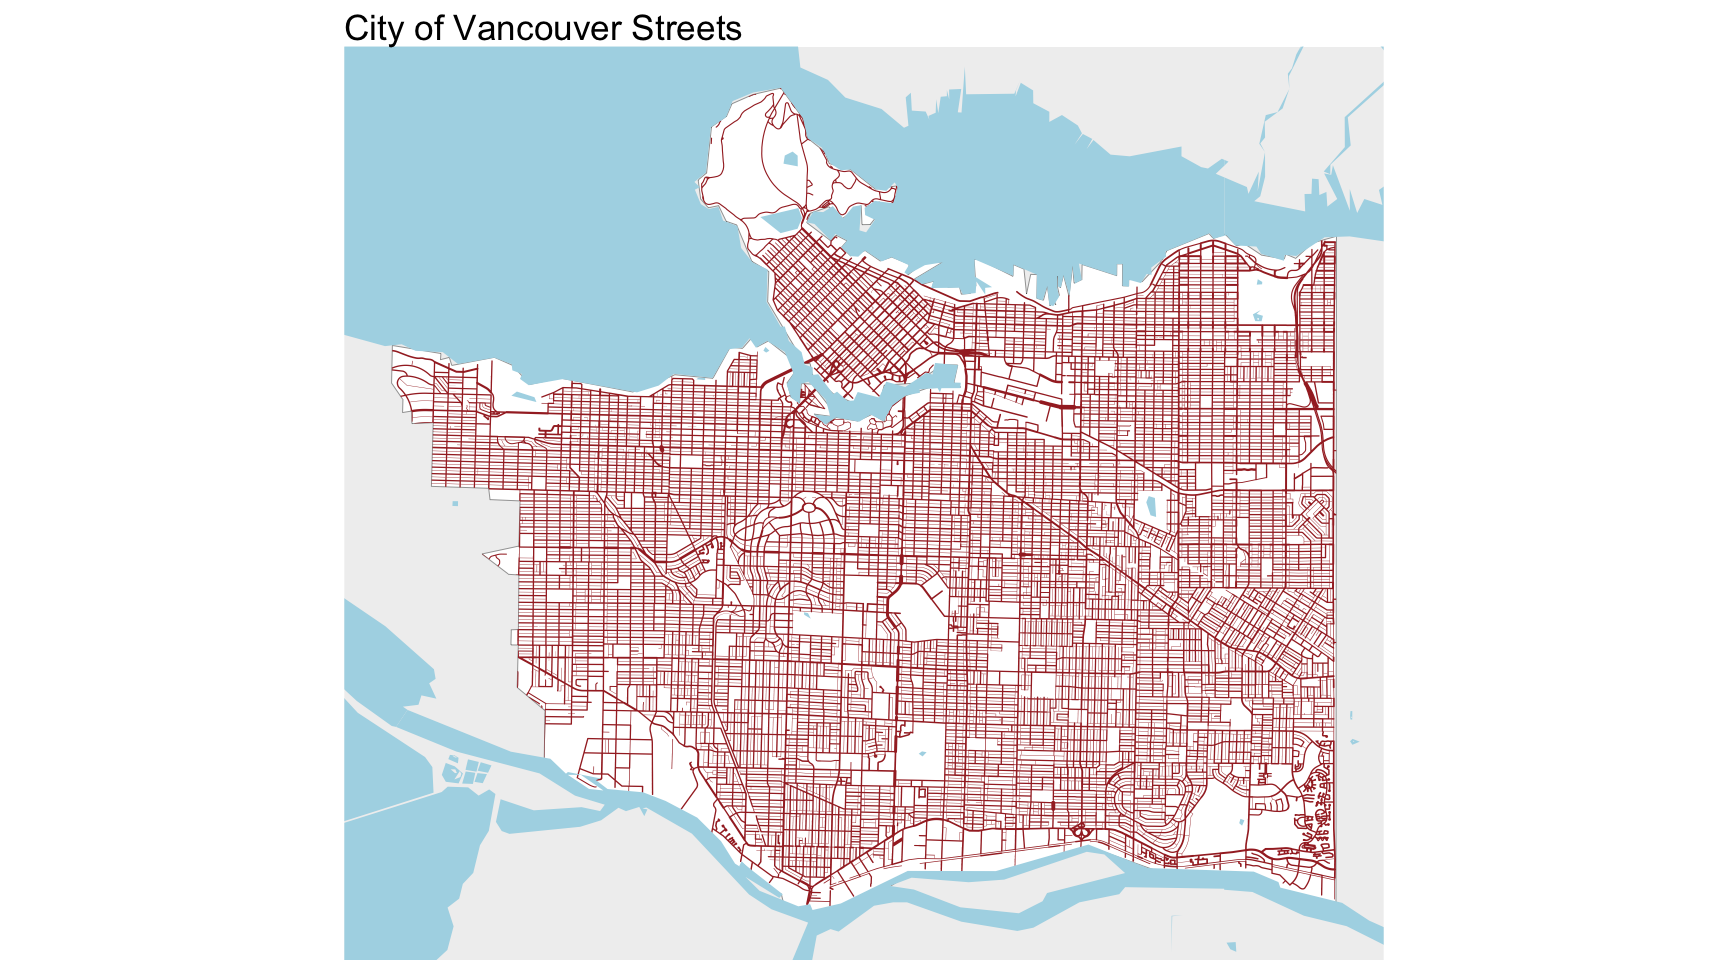 Vancouver Streets and Lanes